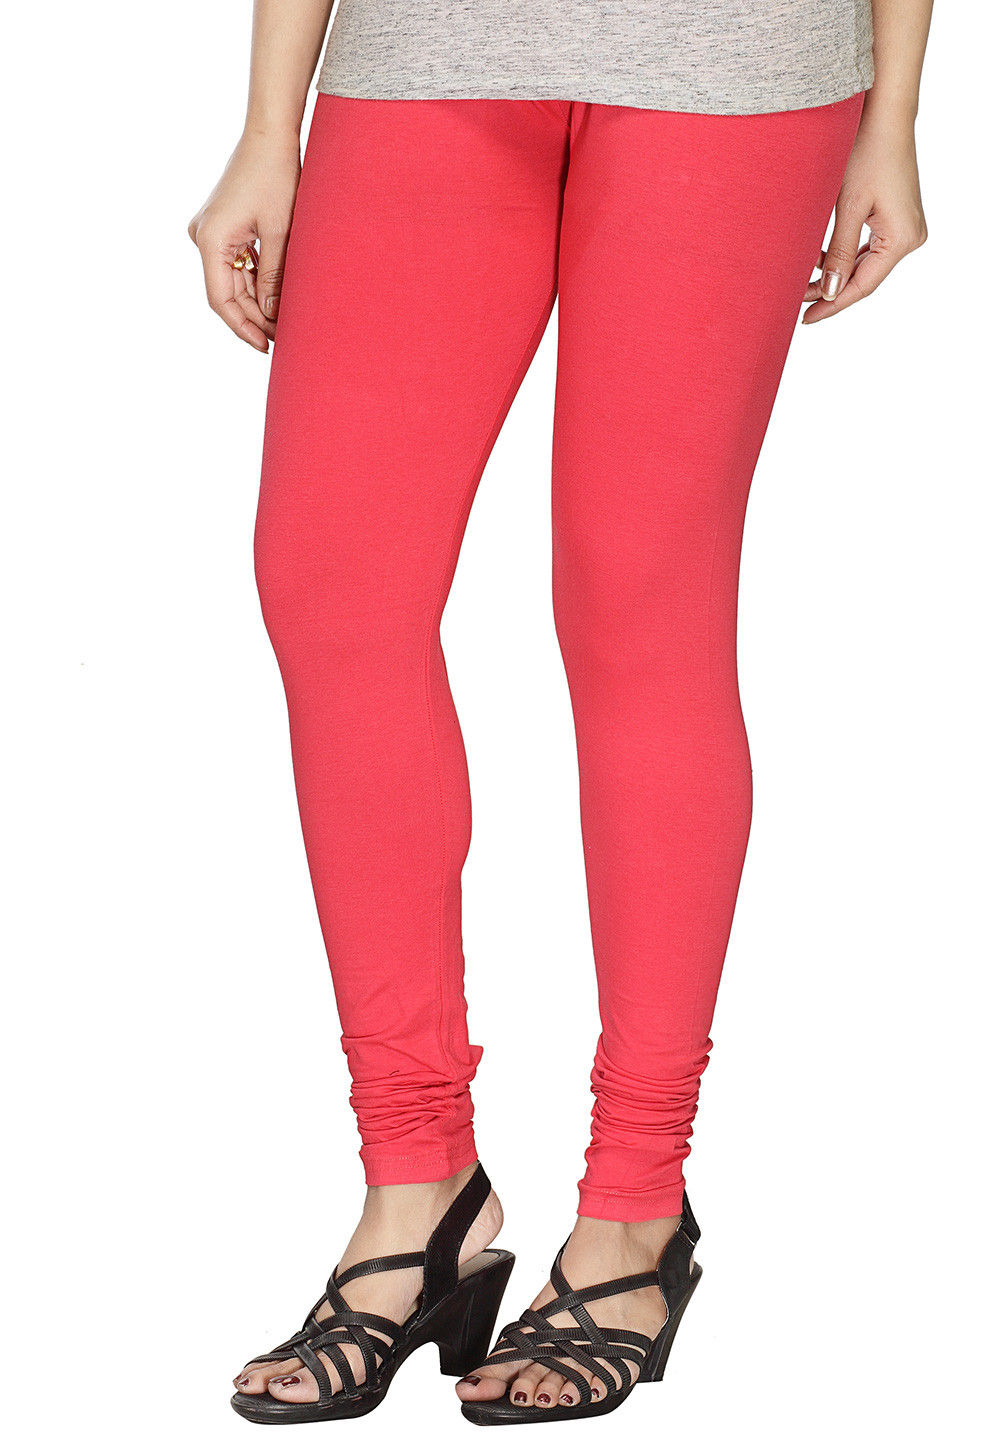 000d63481ad358 ... Solid Color Cotton Lycra Leggings in Coral Pink. Zoom. View Similar